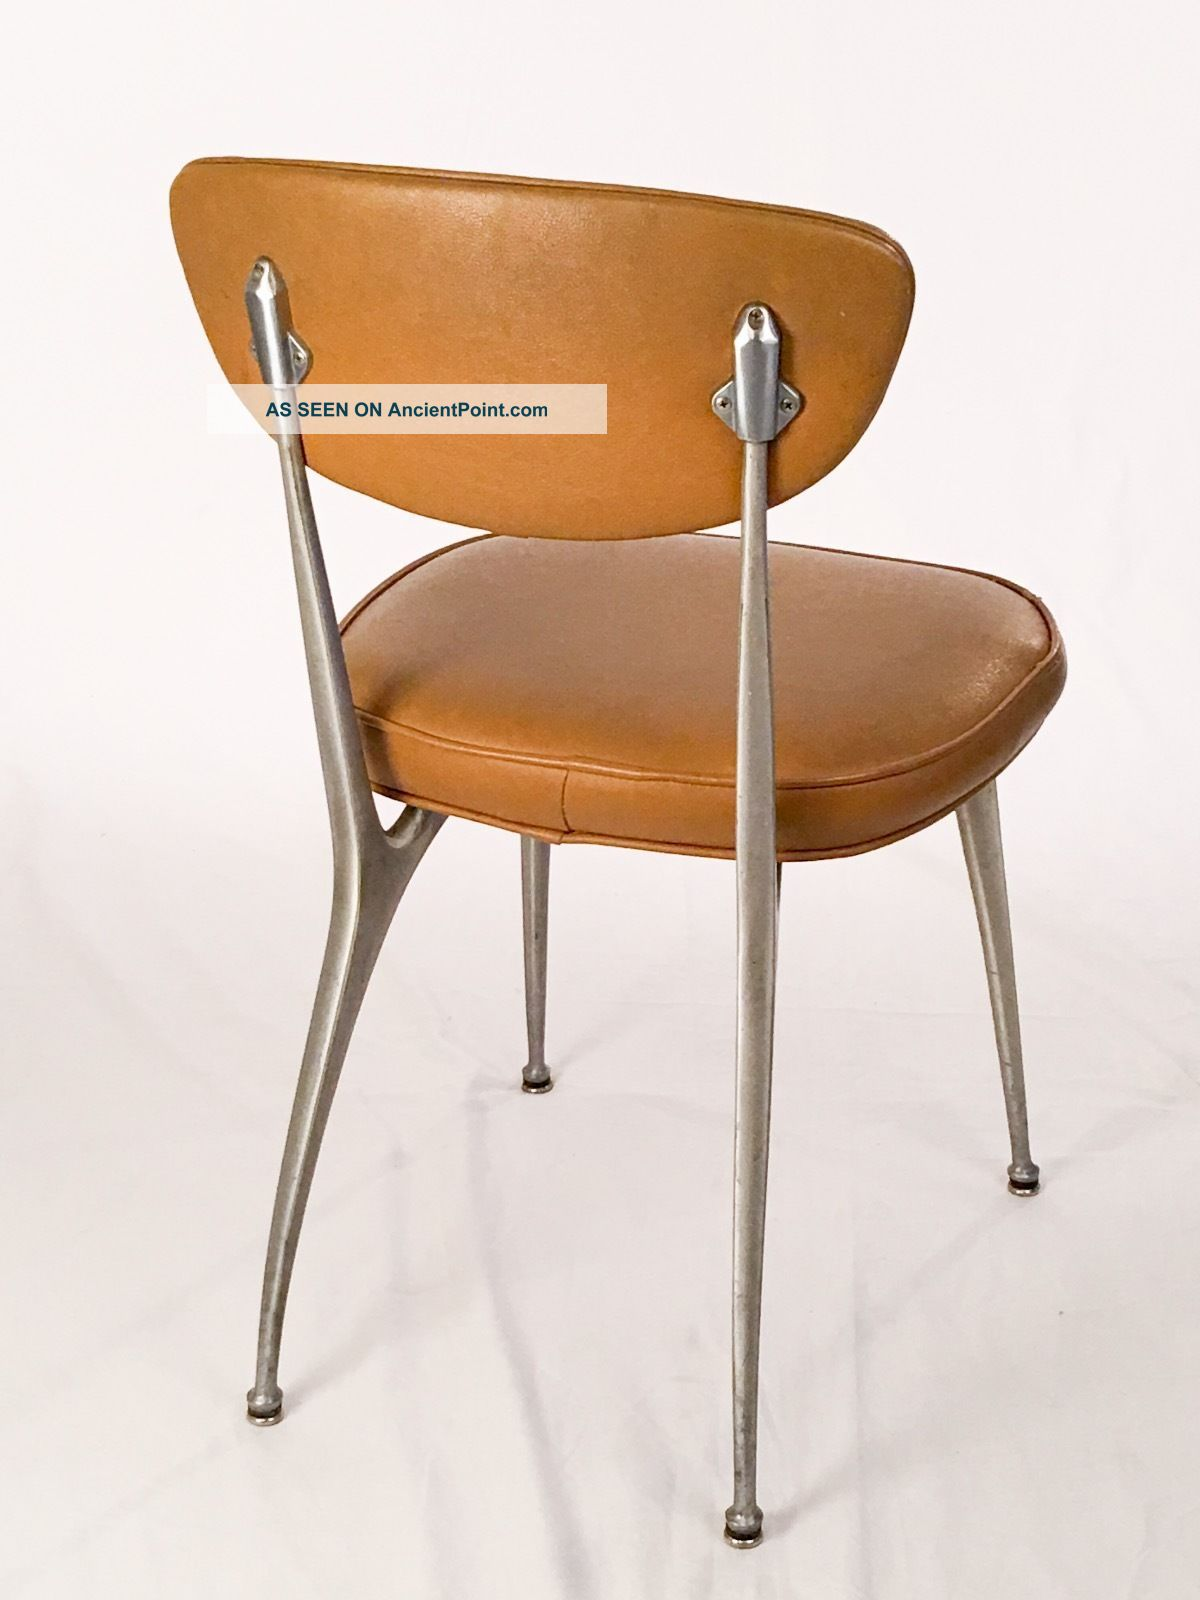 Authentic Rare Shelby Williams Gazelle Chair Machine Age Aluminum Mid Century Post-1950 photo